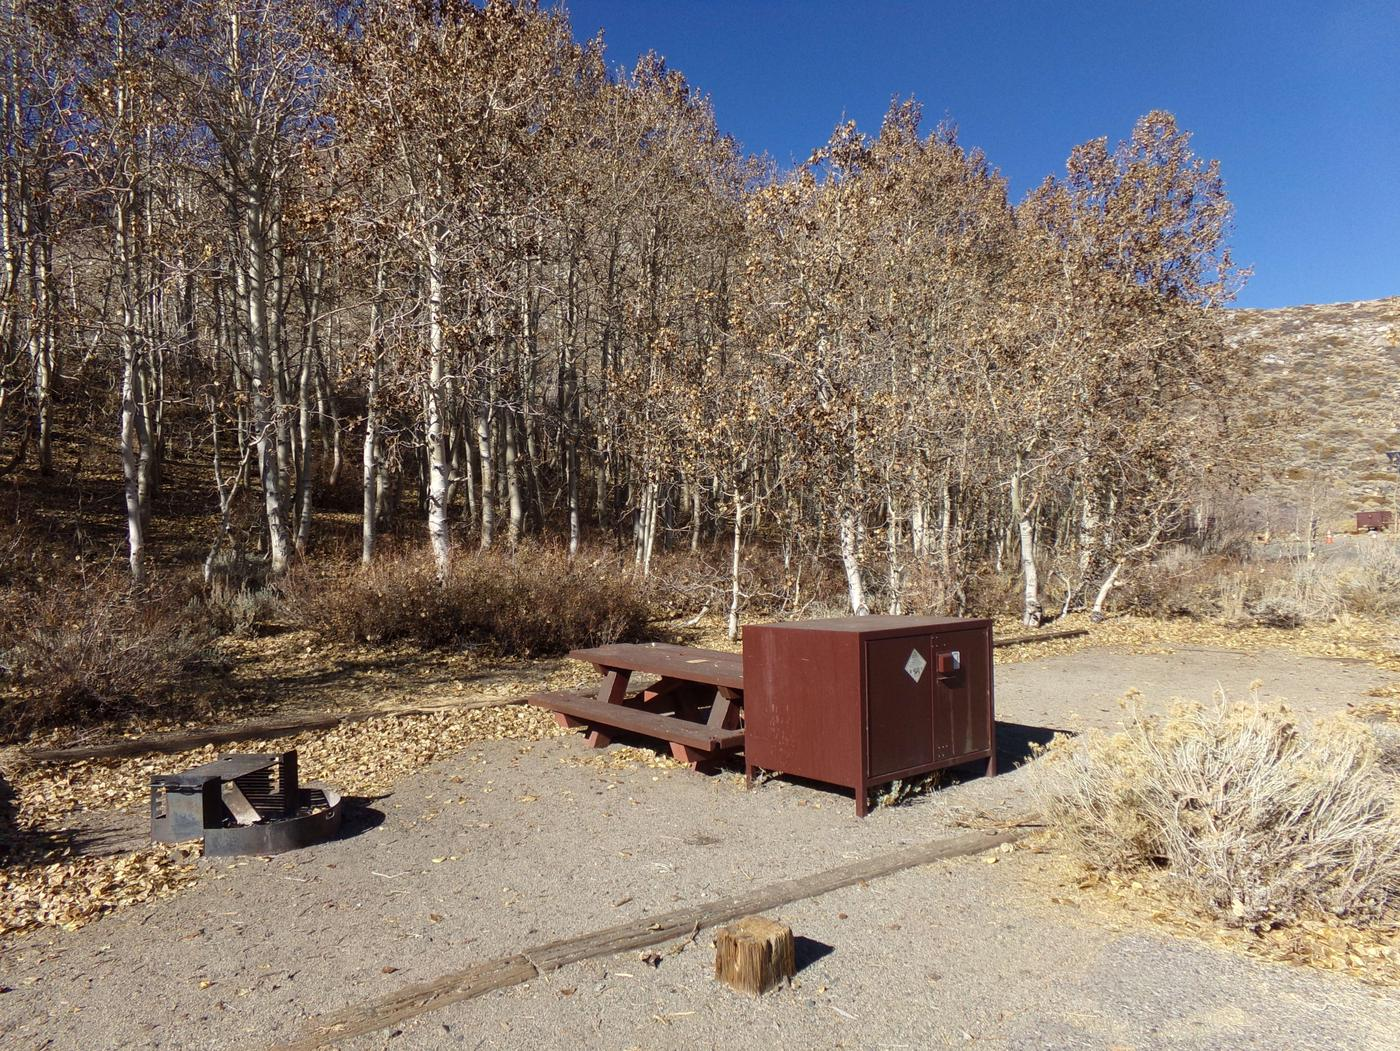 McGee Creek Campground site #23 with full campsite view including picnic area, food storage, and fire pit.